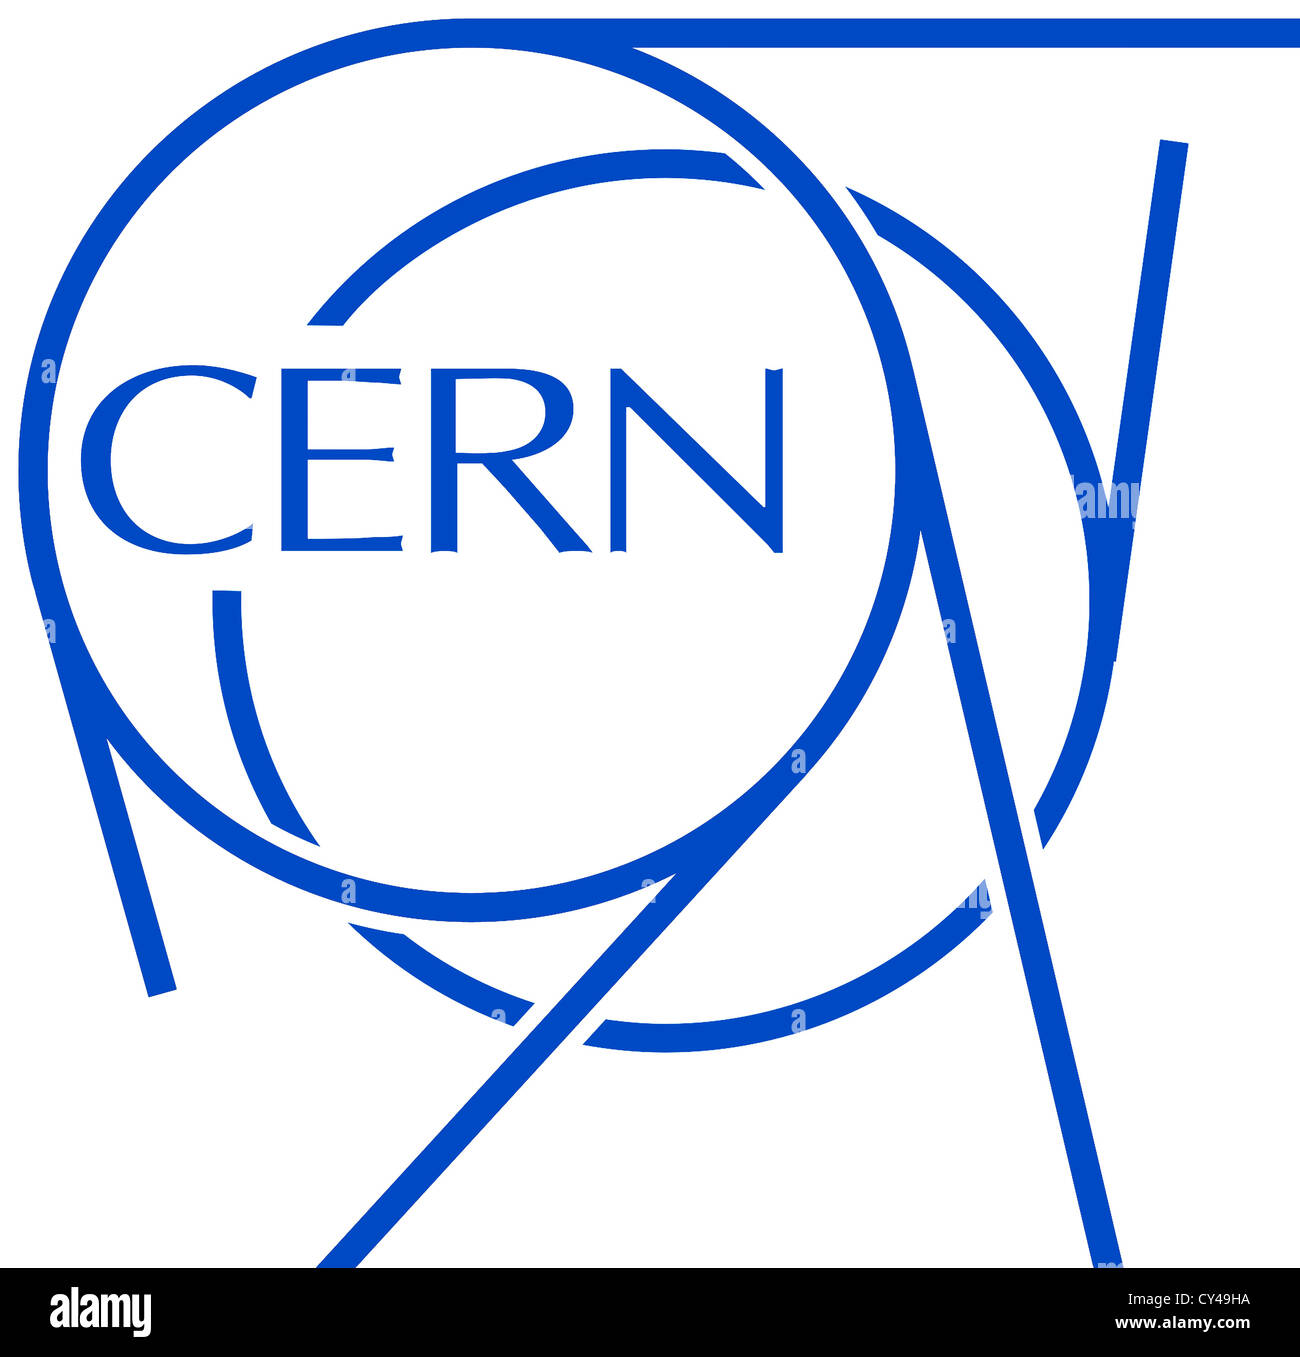 Logo of the European Organization for Nuclear Research CERN with seat in Geneva. - Stock Image